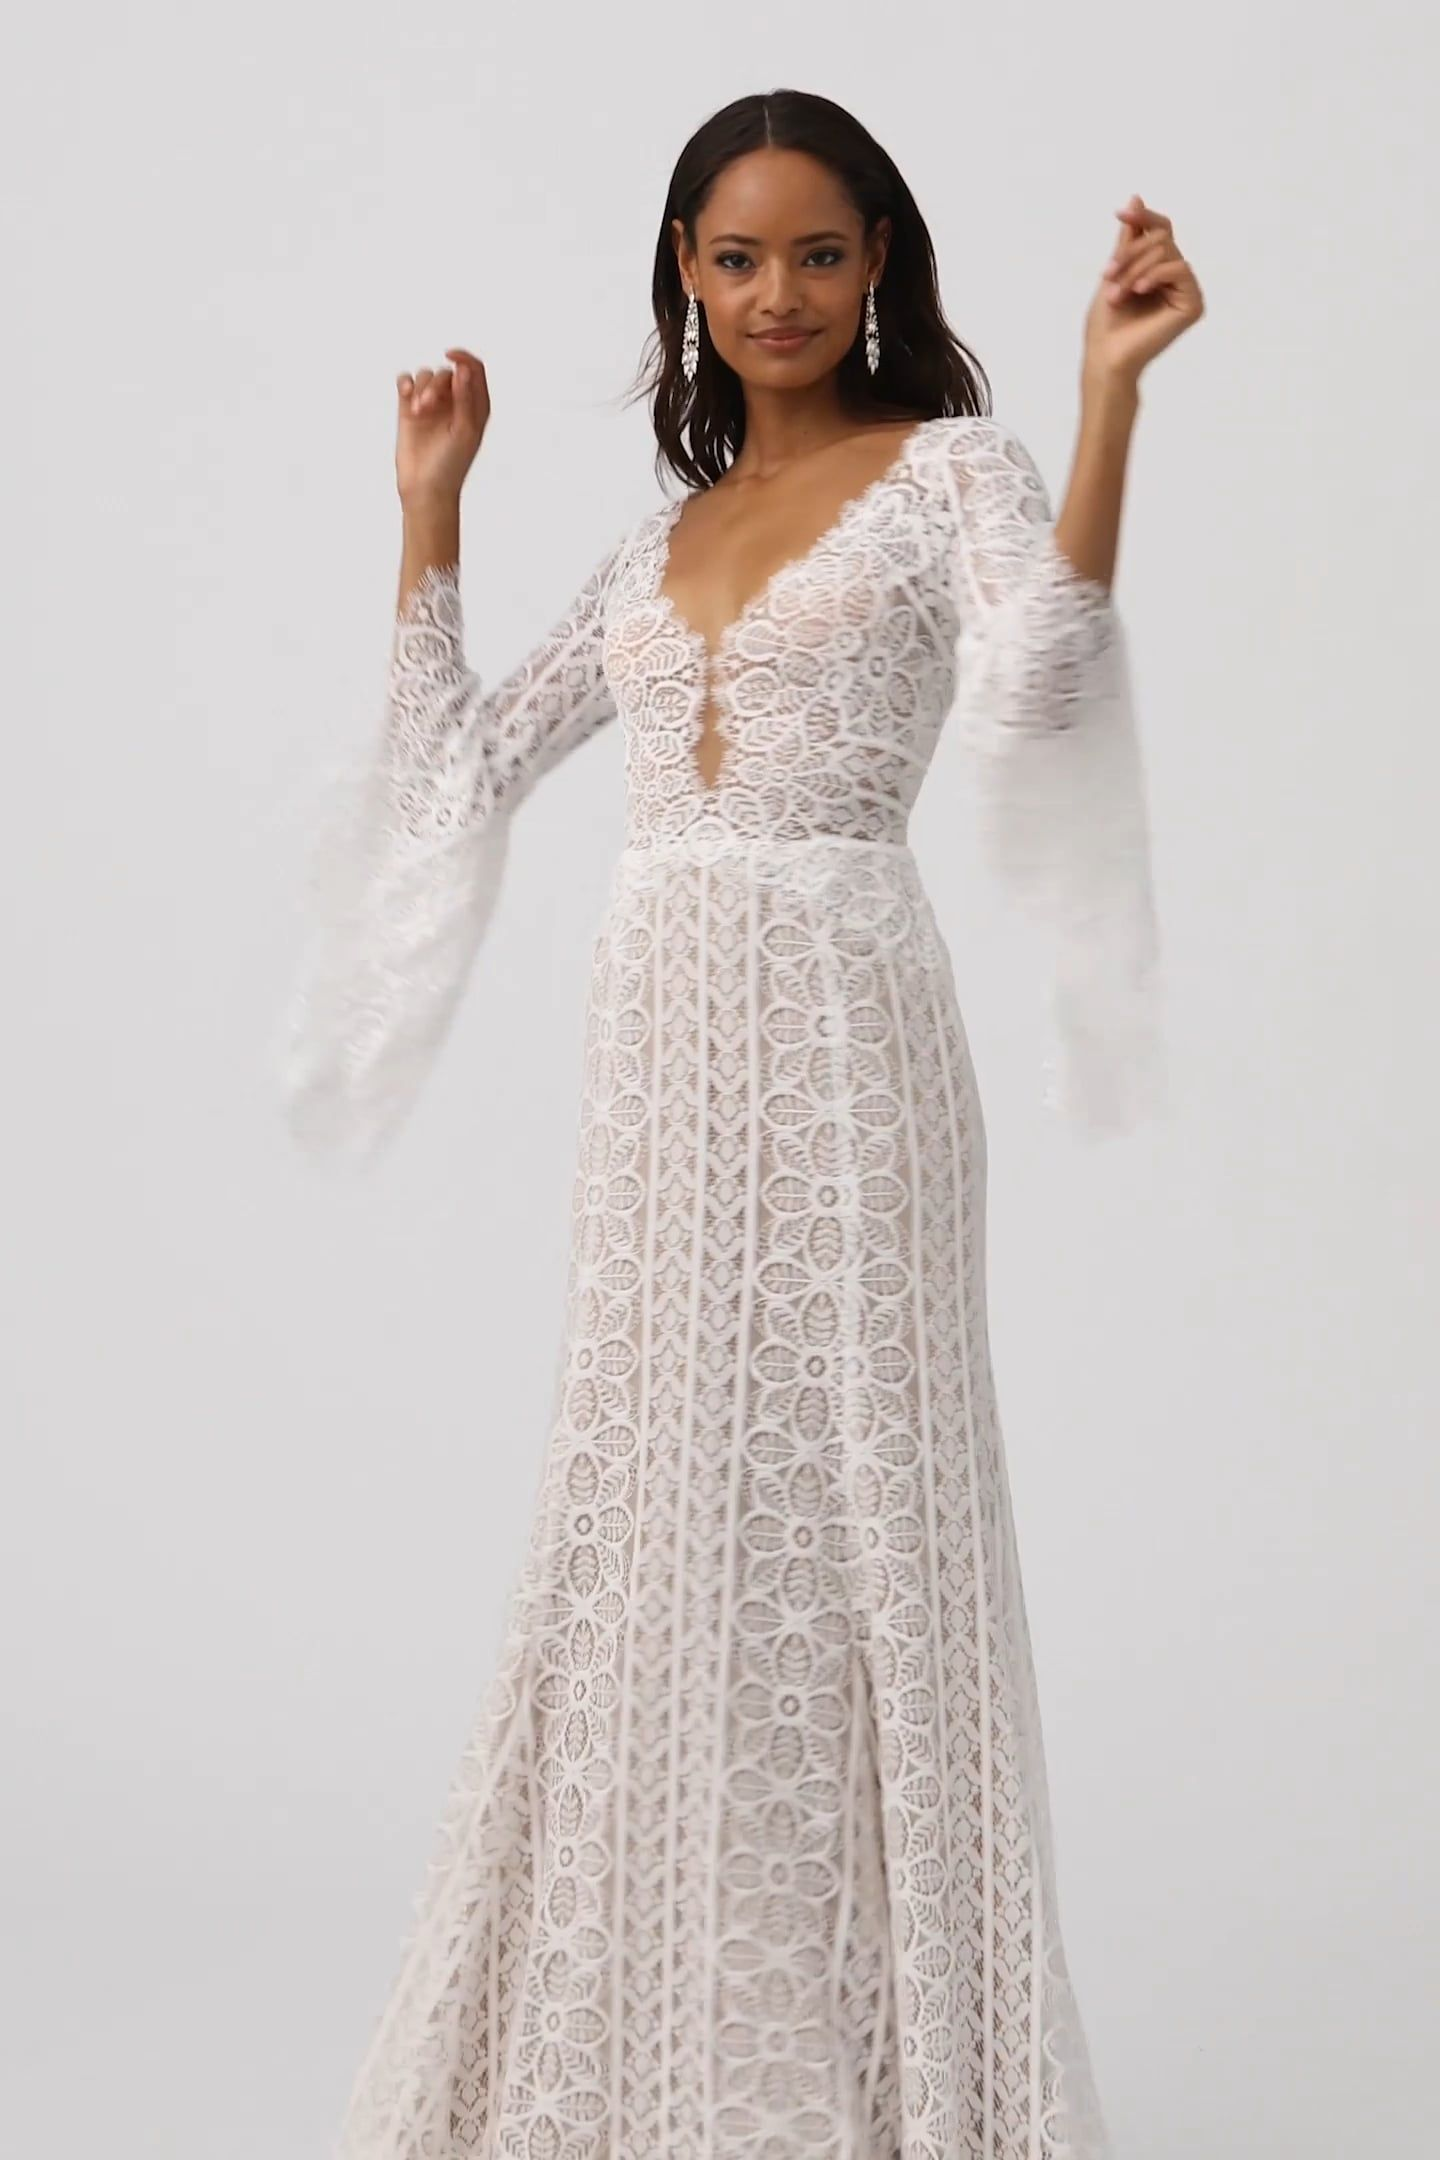 Willowby By Watters Adelaide Gown Bell Sleeve Wedding Dress Long Sleeve Wedding Dress Lace White Wedding Gowns,October Wedding Guest Autumn Dresses 2020